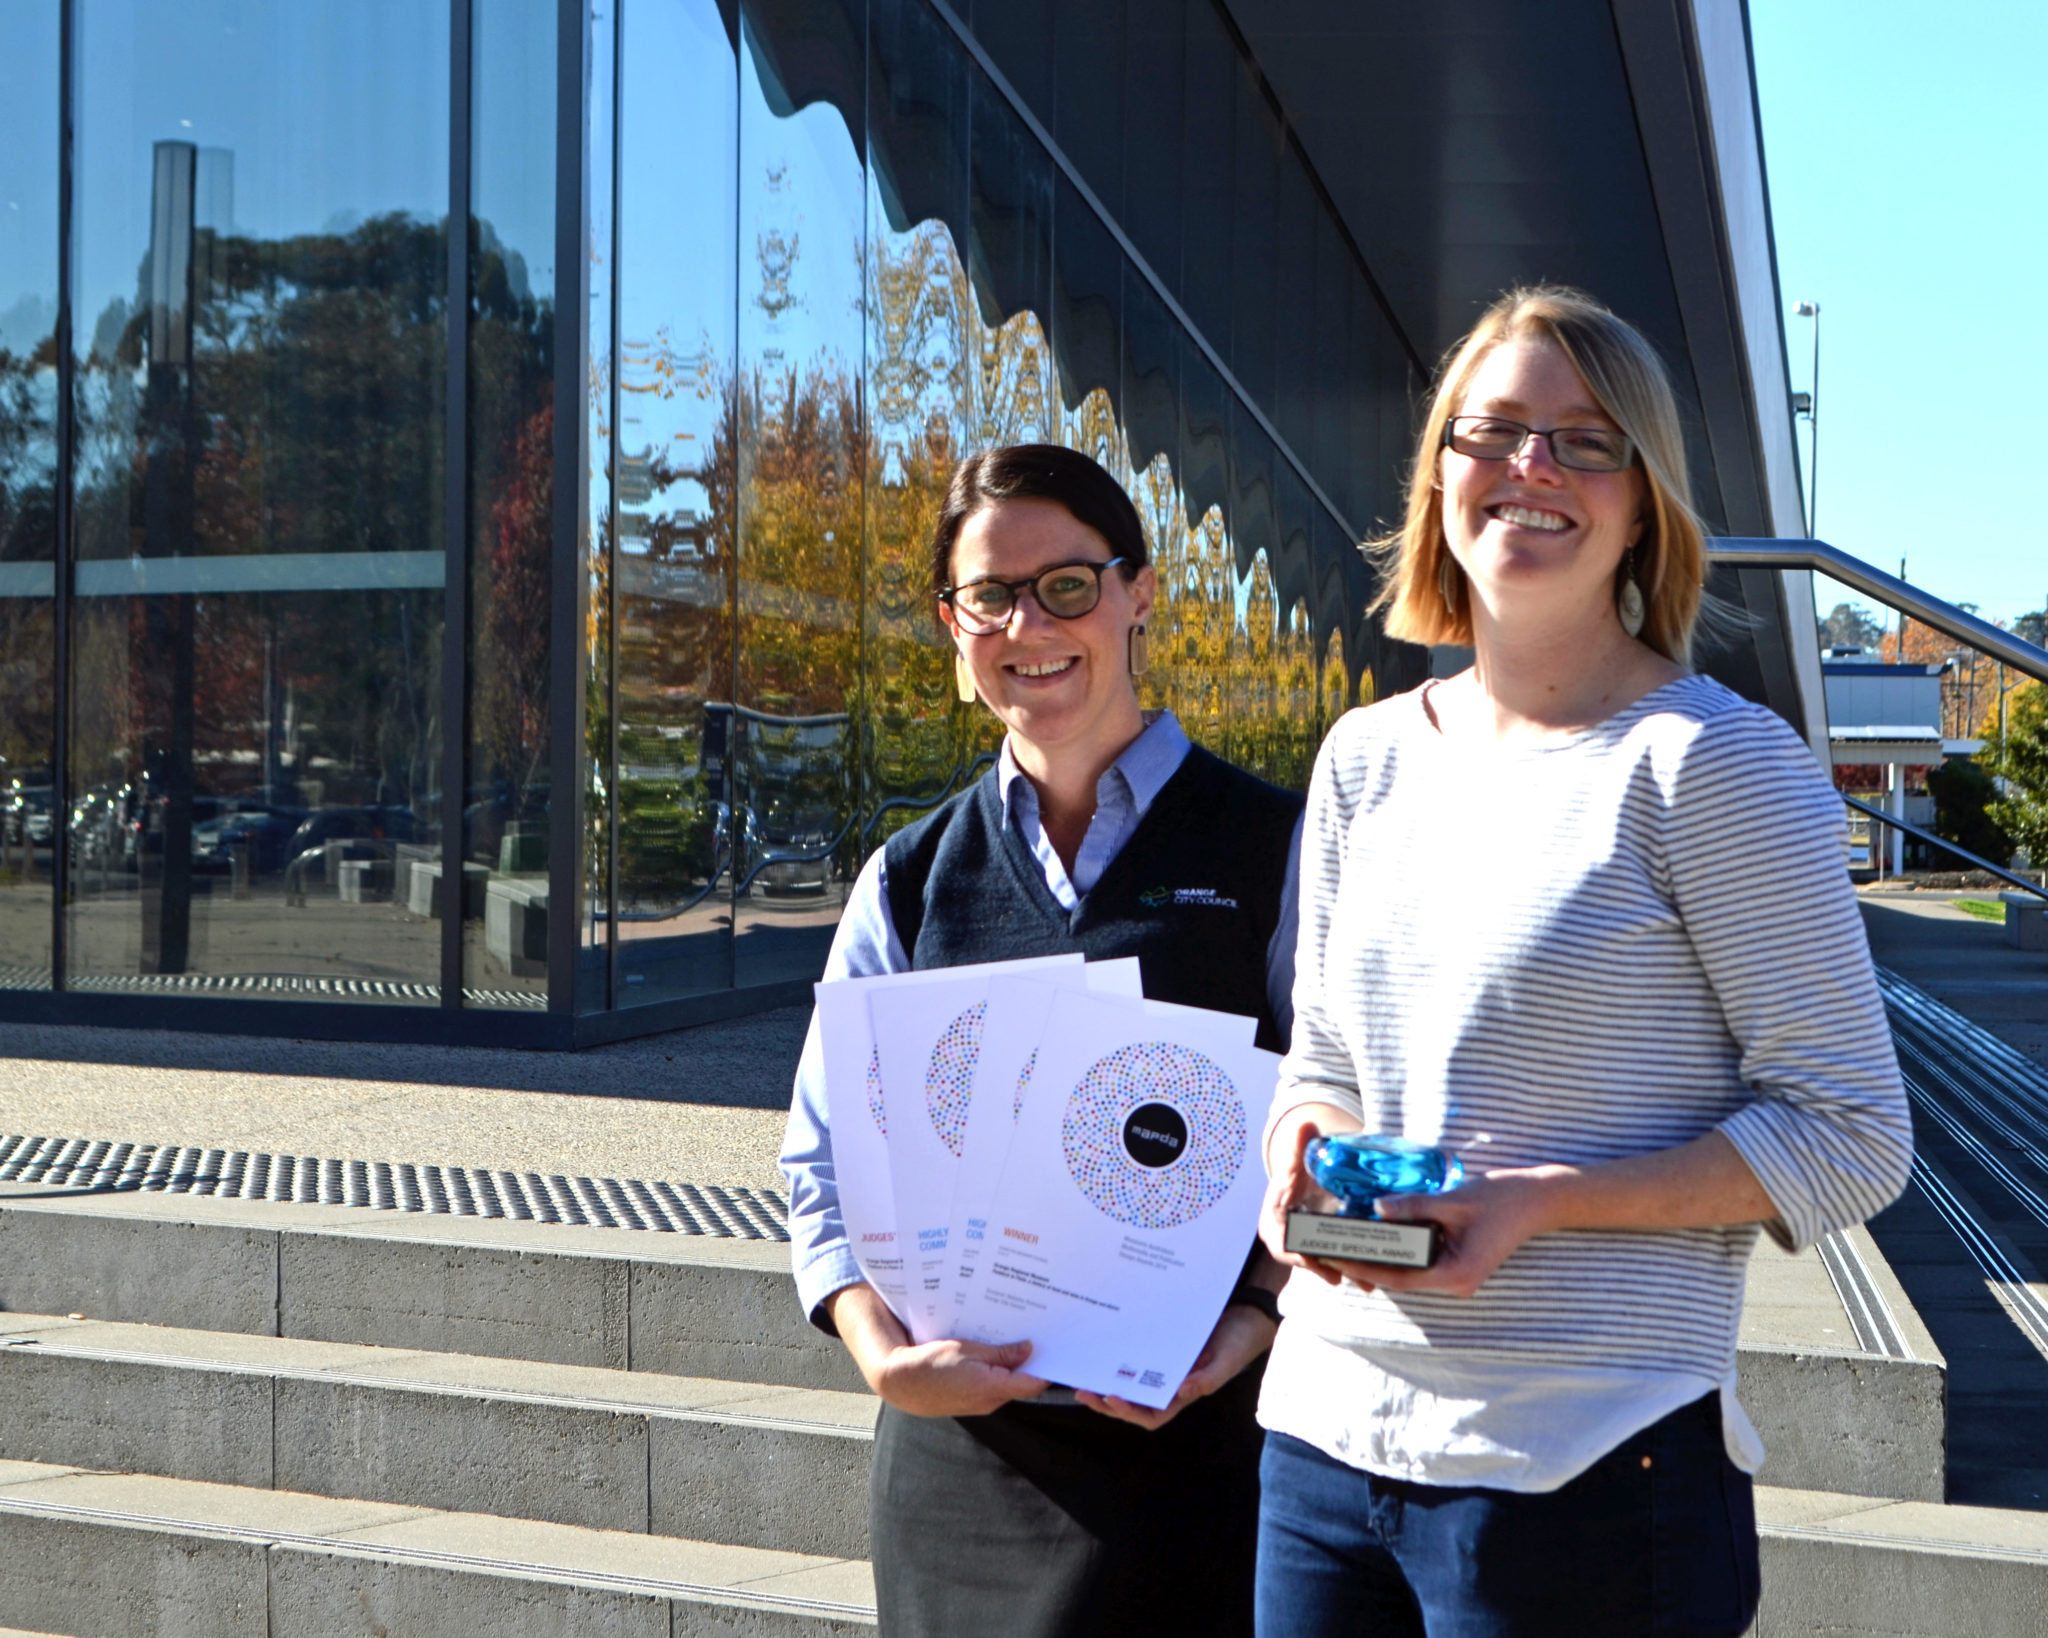 Graphic designer Natasha Townsend and museum manager Allison Campbell with a suite of awards from the Museums Australasia Publication Design Awards